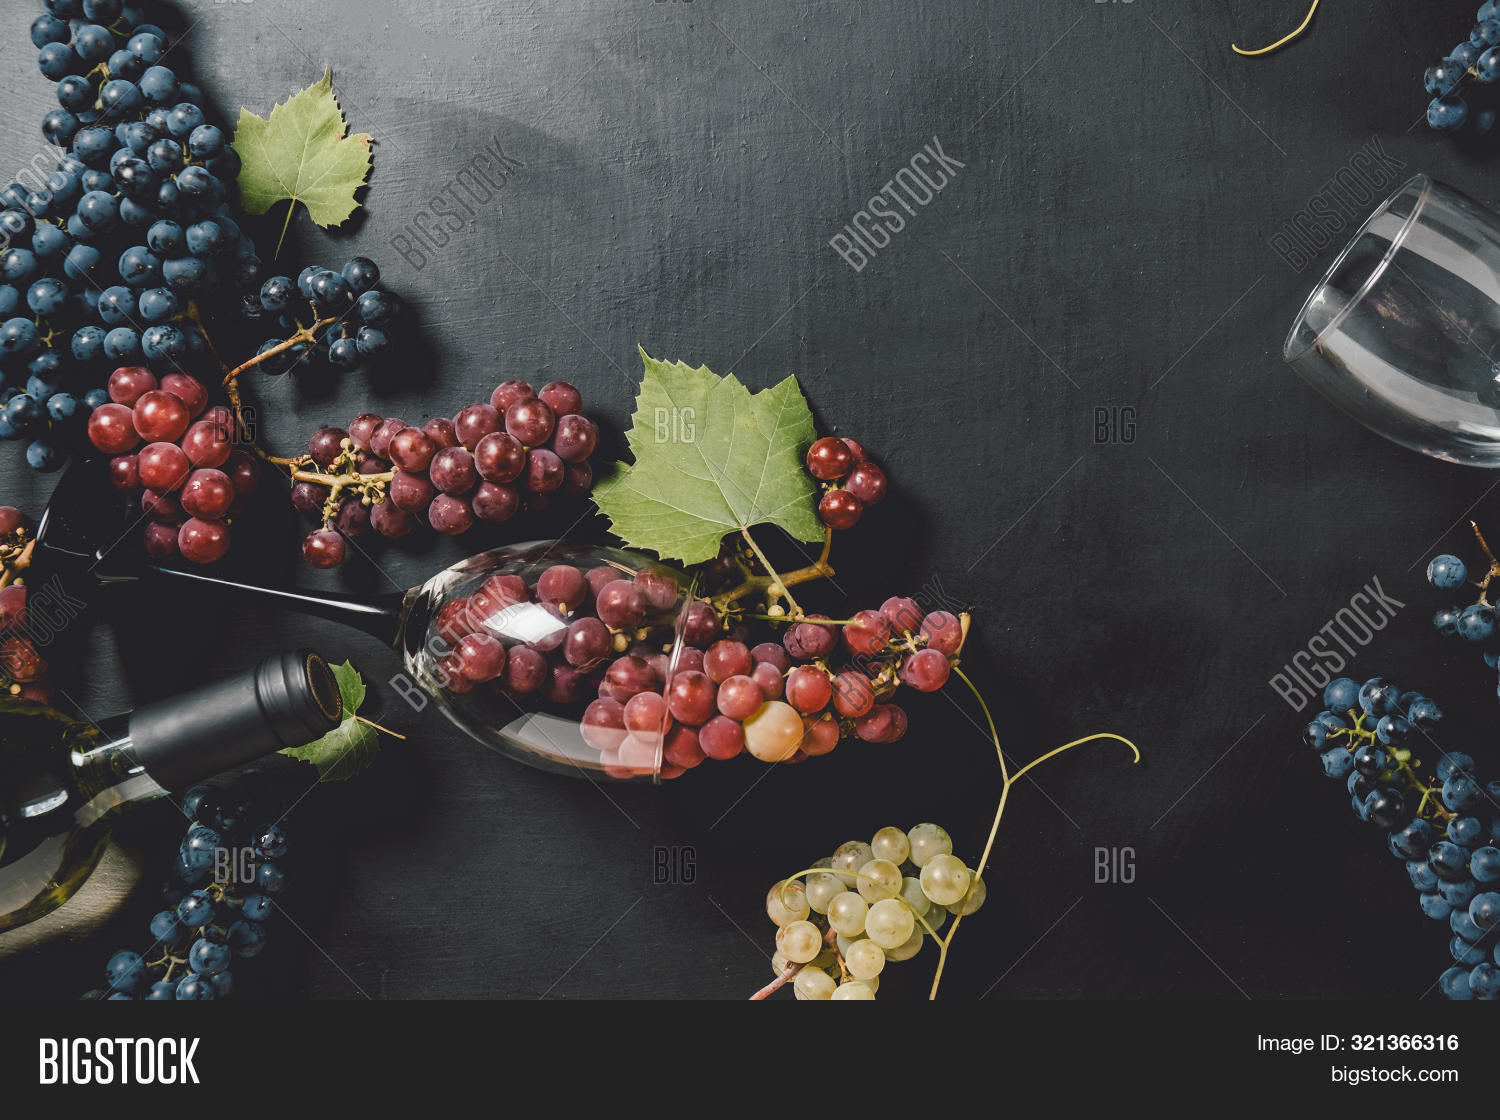 above,alcohol,background,banner,bar,beverage,black,bottle,cabernet,celebrate,copy,corkscrew,creative,dark,drink,event,flat,food,glass,gourmet,grape,header,lay,leaf,luxury,merlot,natural,nobody,old,overhead,party,red,restaurant,rustic,space,table,taste,texture,top,view,vineyard,vino,vintage,white,wine,wineglass,winery,wood,wooden